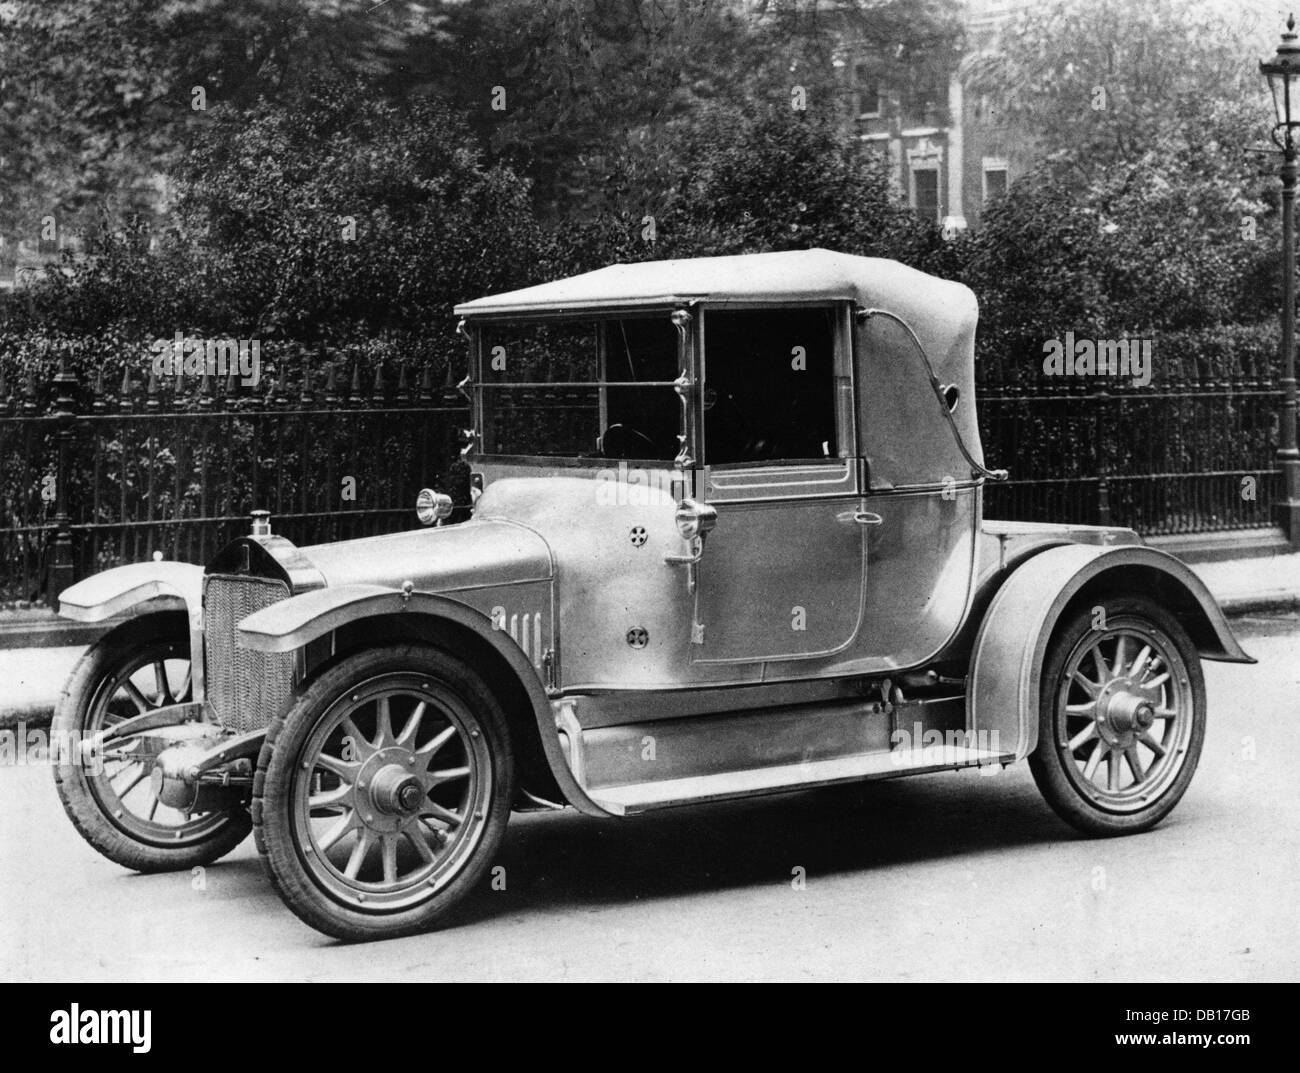 1912 Straker Squire 15hp - Stock Image